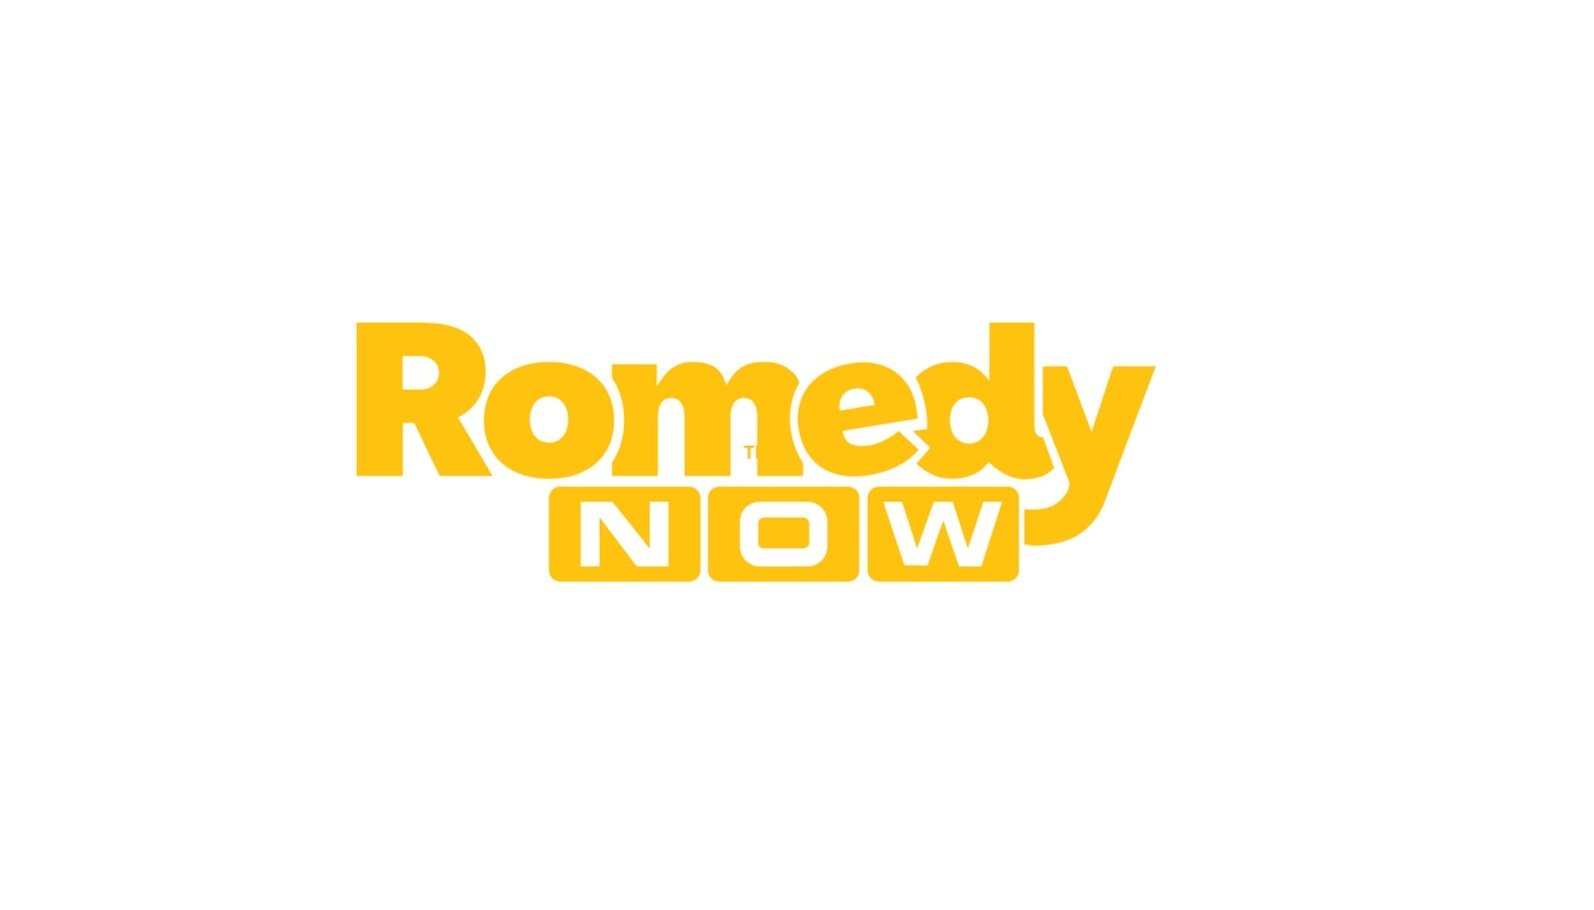 Romedy Now Tv Schedule Today & Romedy Now Popular shows for today